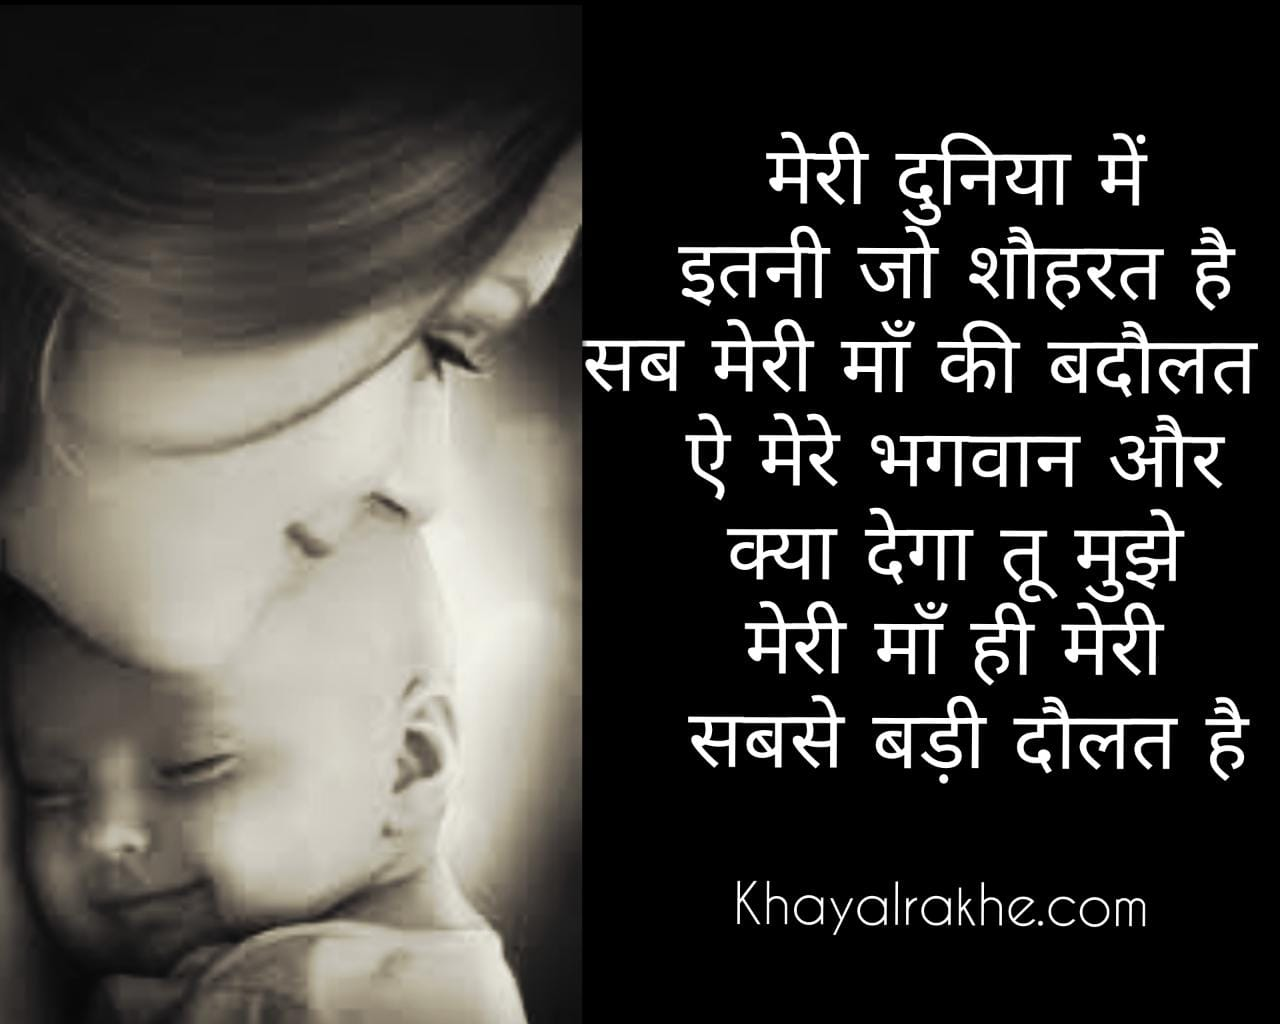 Happy Mother's Day Suvichar Quotes in Hindi